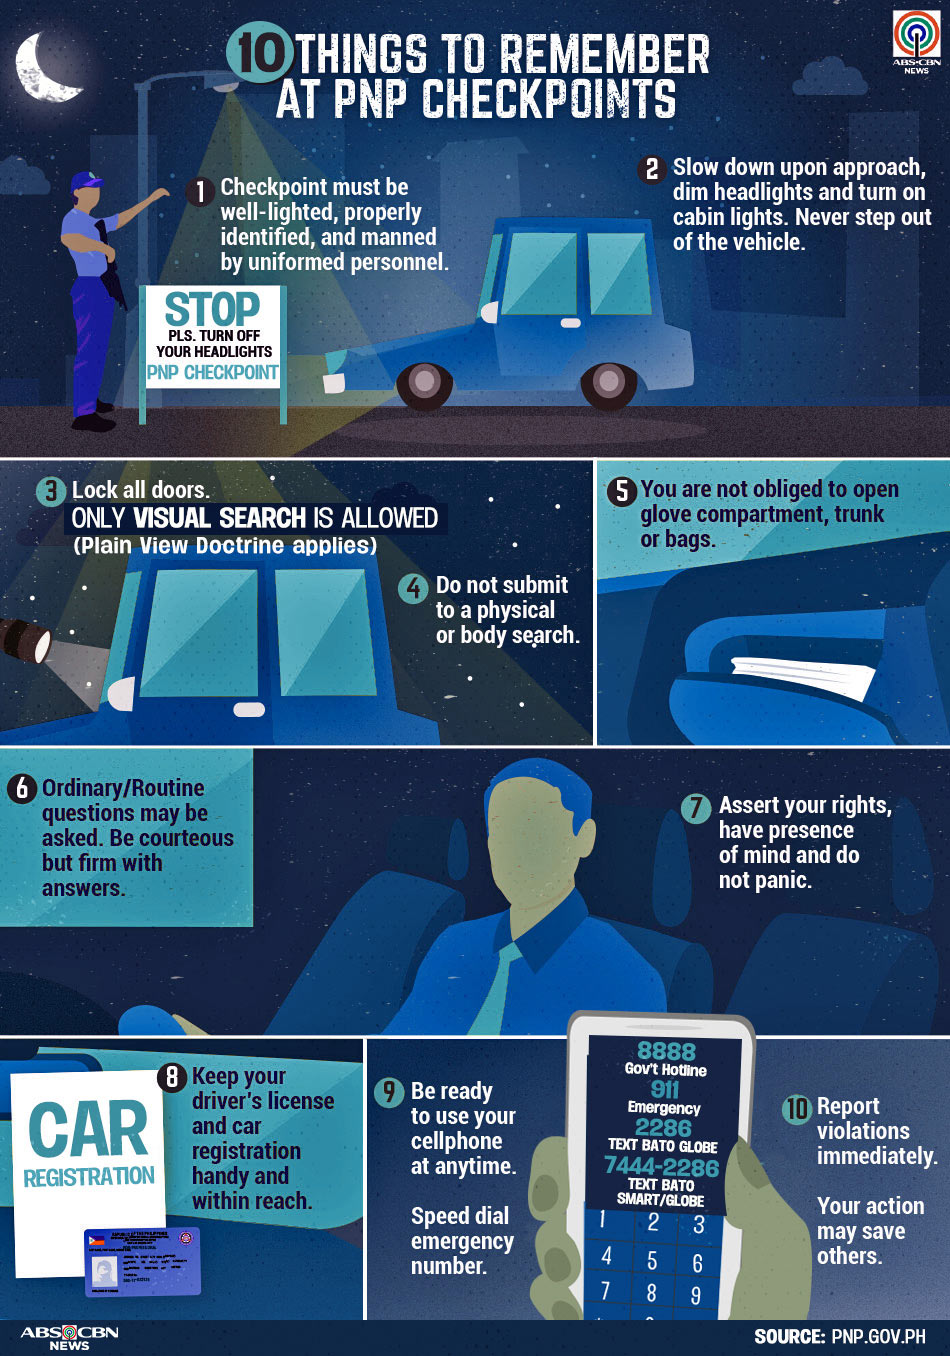 10 things to remember at PNP checkpoints | ABS-CBN News